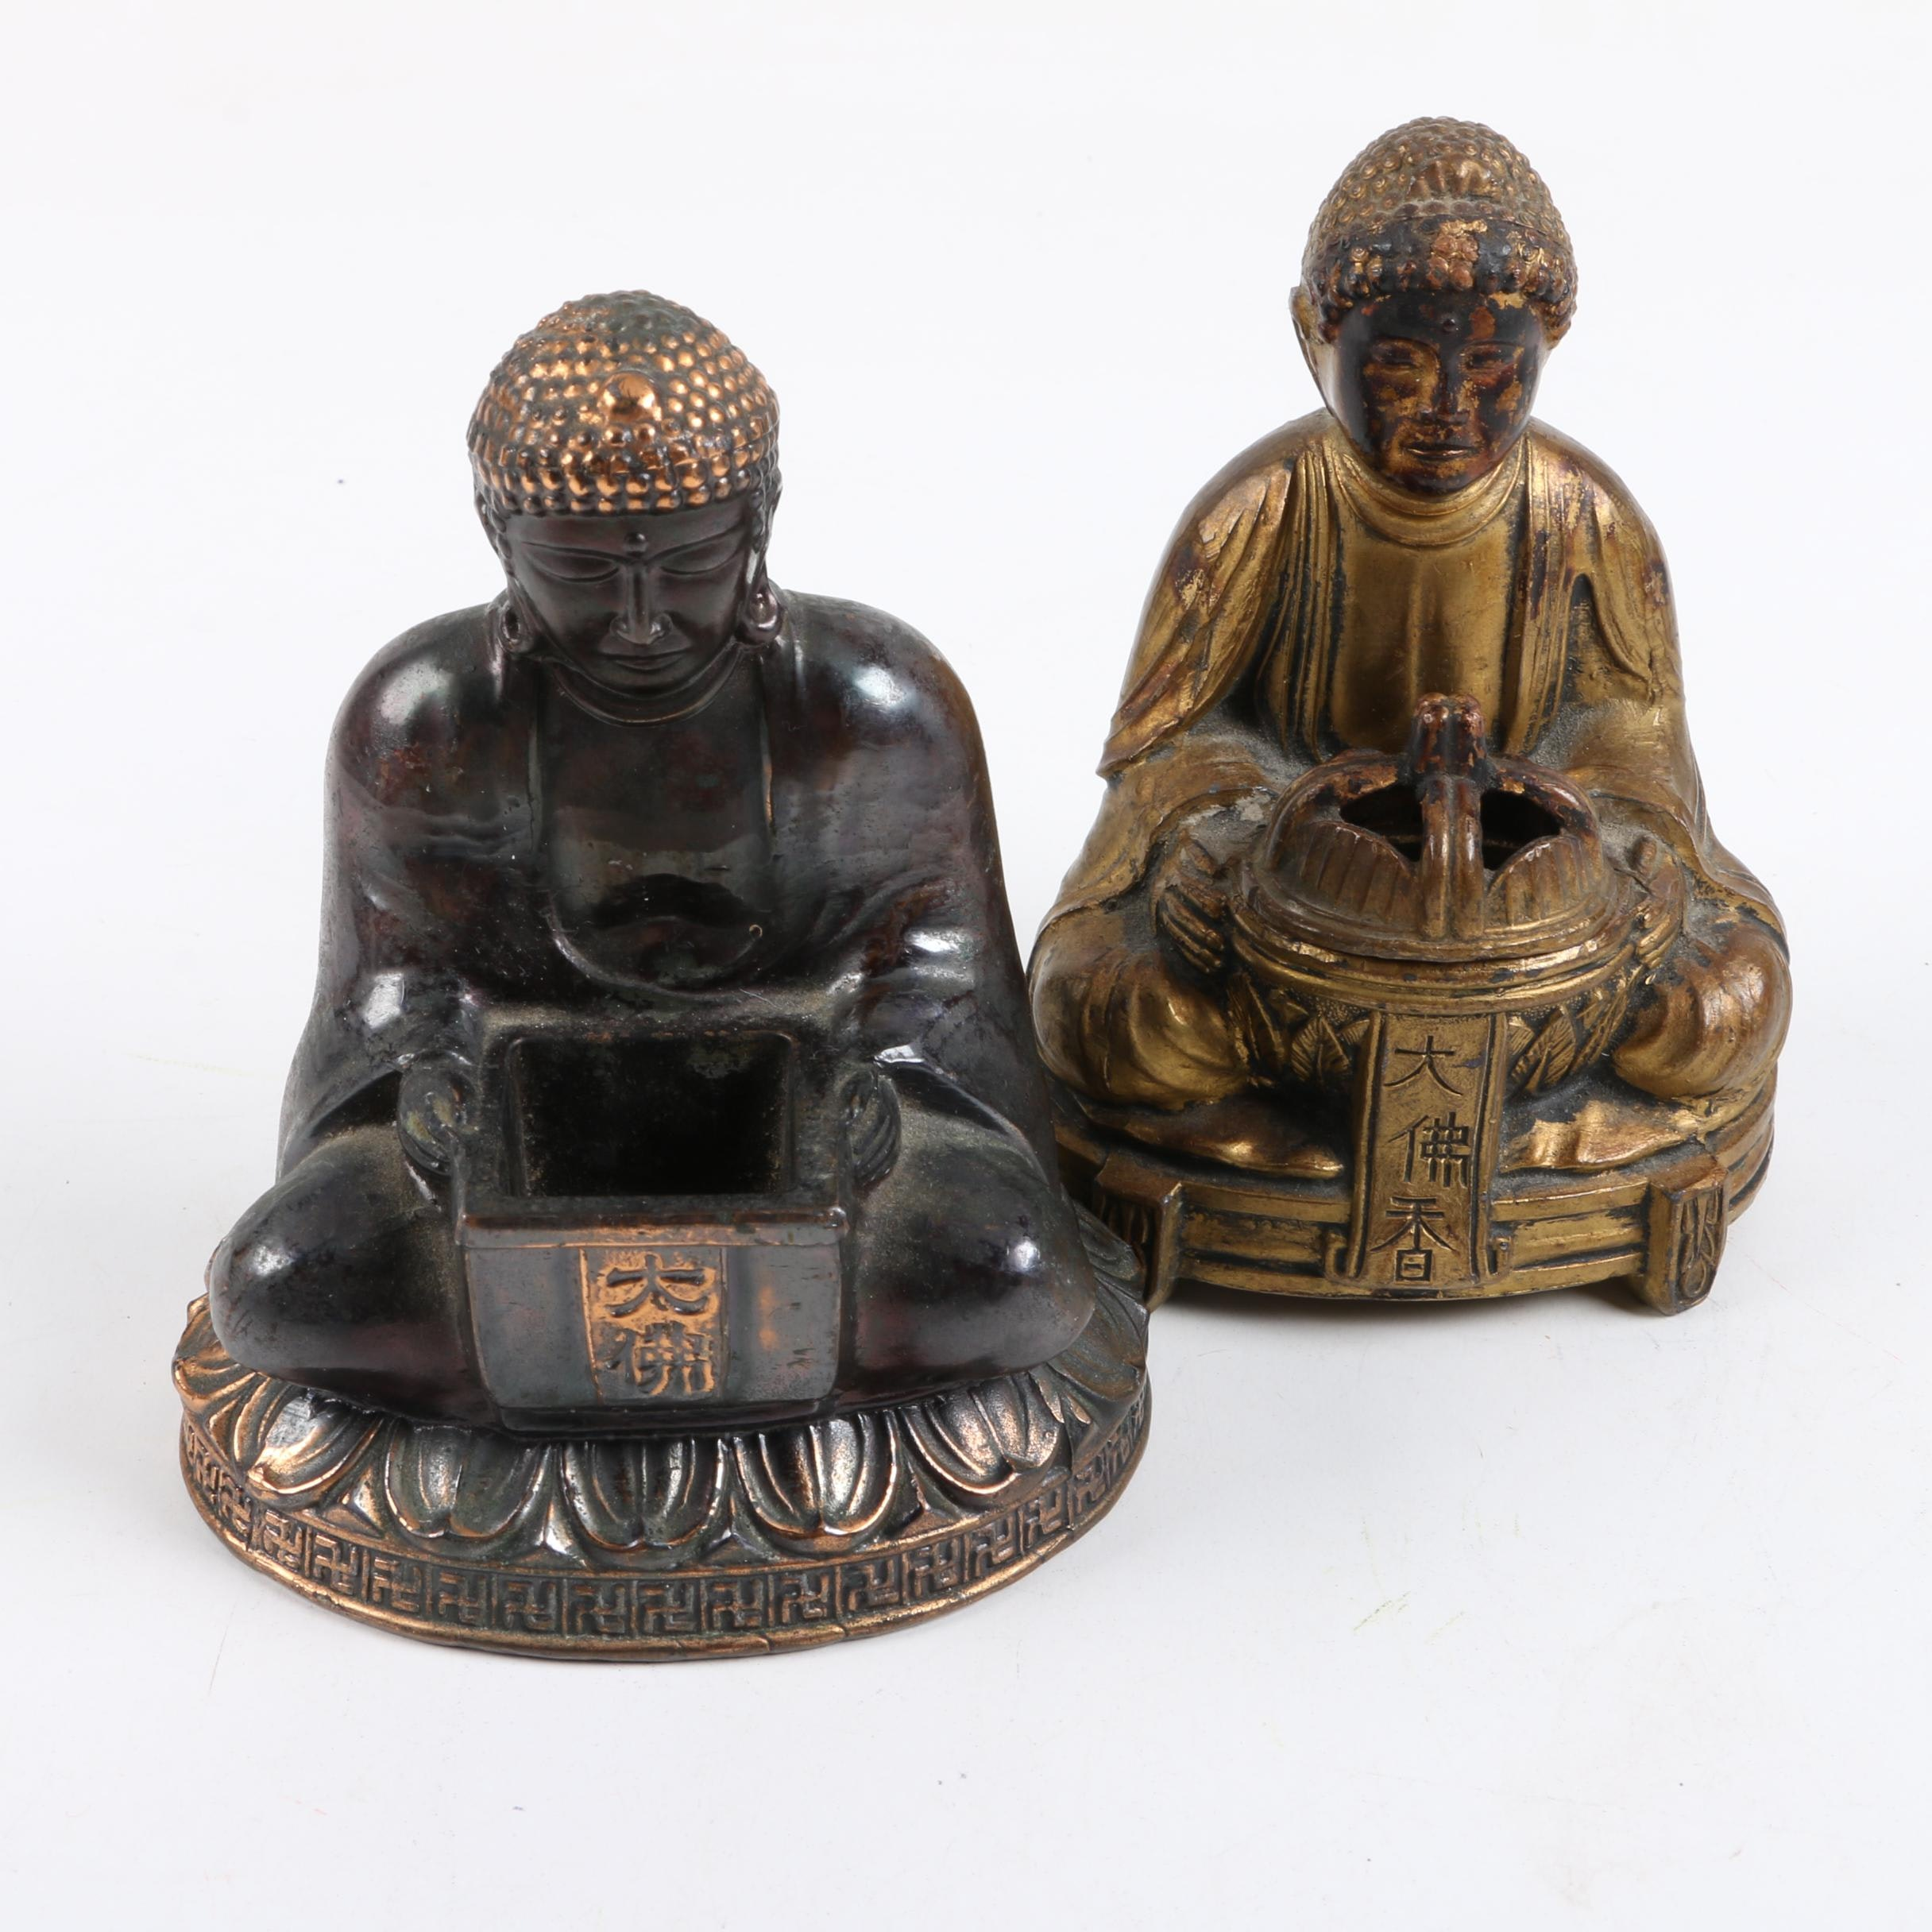 Pair of Chinese Metal Sitting Buddha Incense Burners